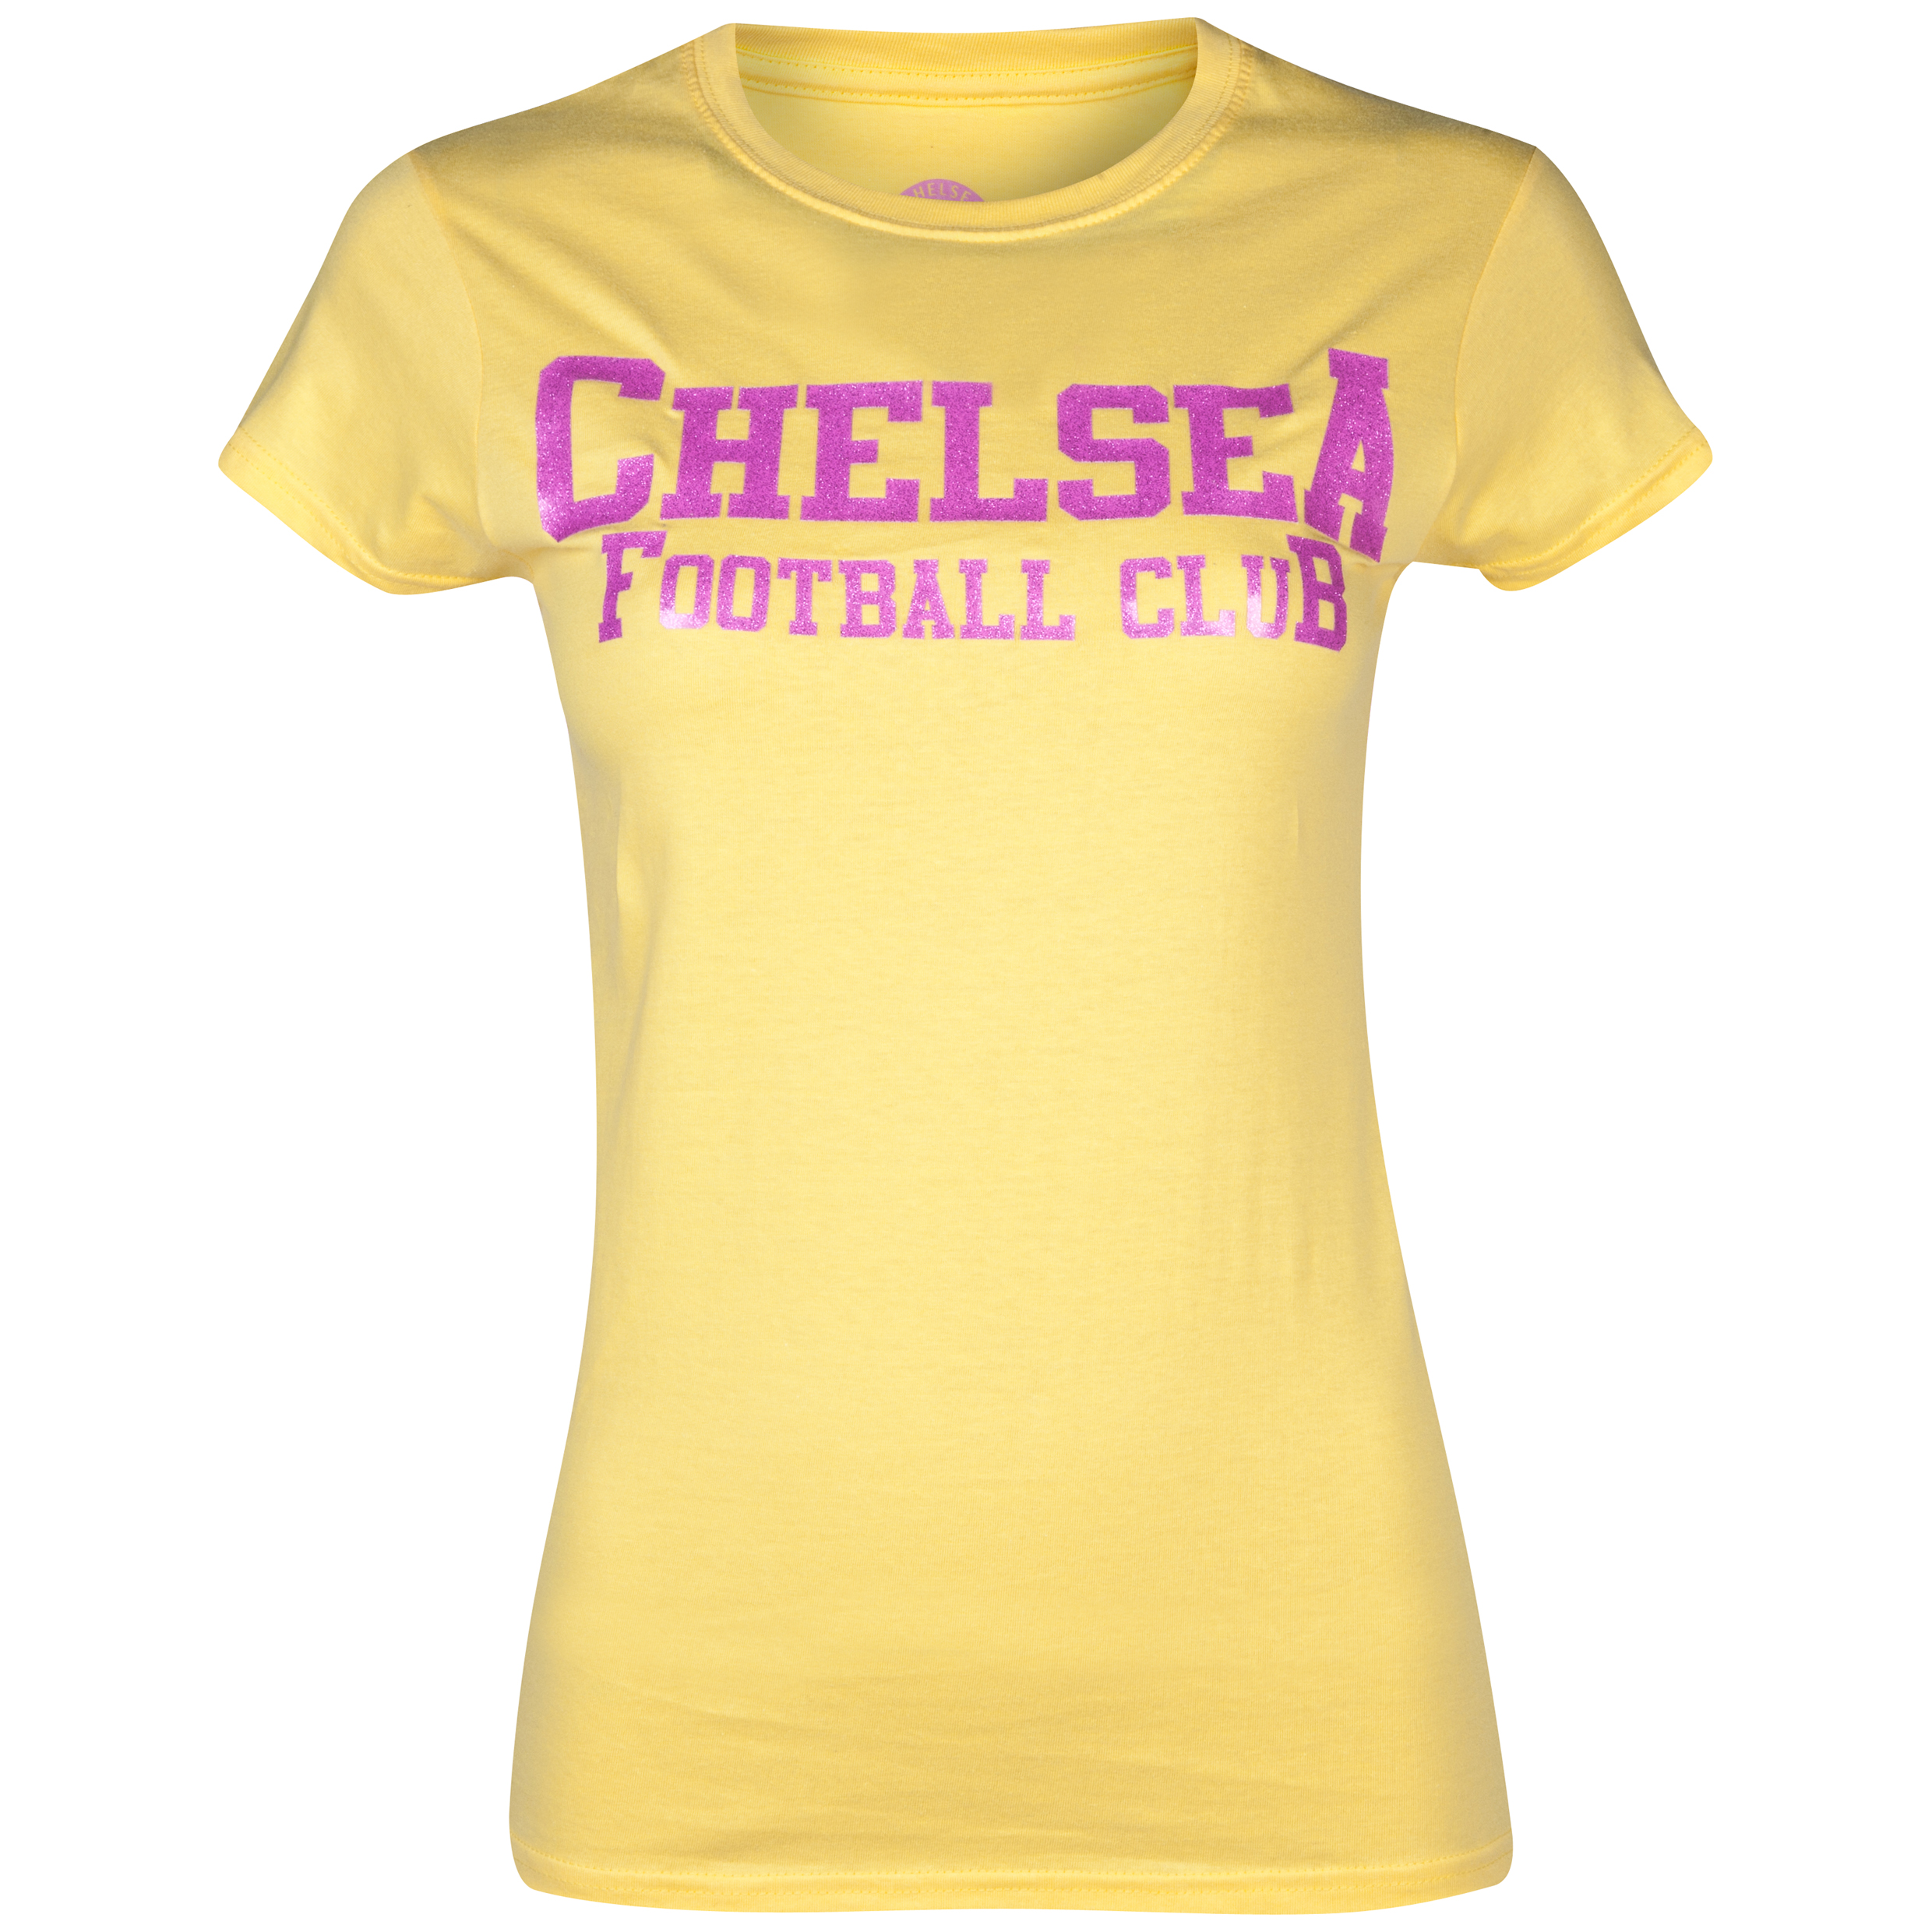 Chelsea Club Glitter T-Shirt - Womens Yellow